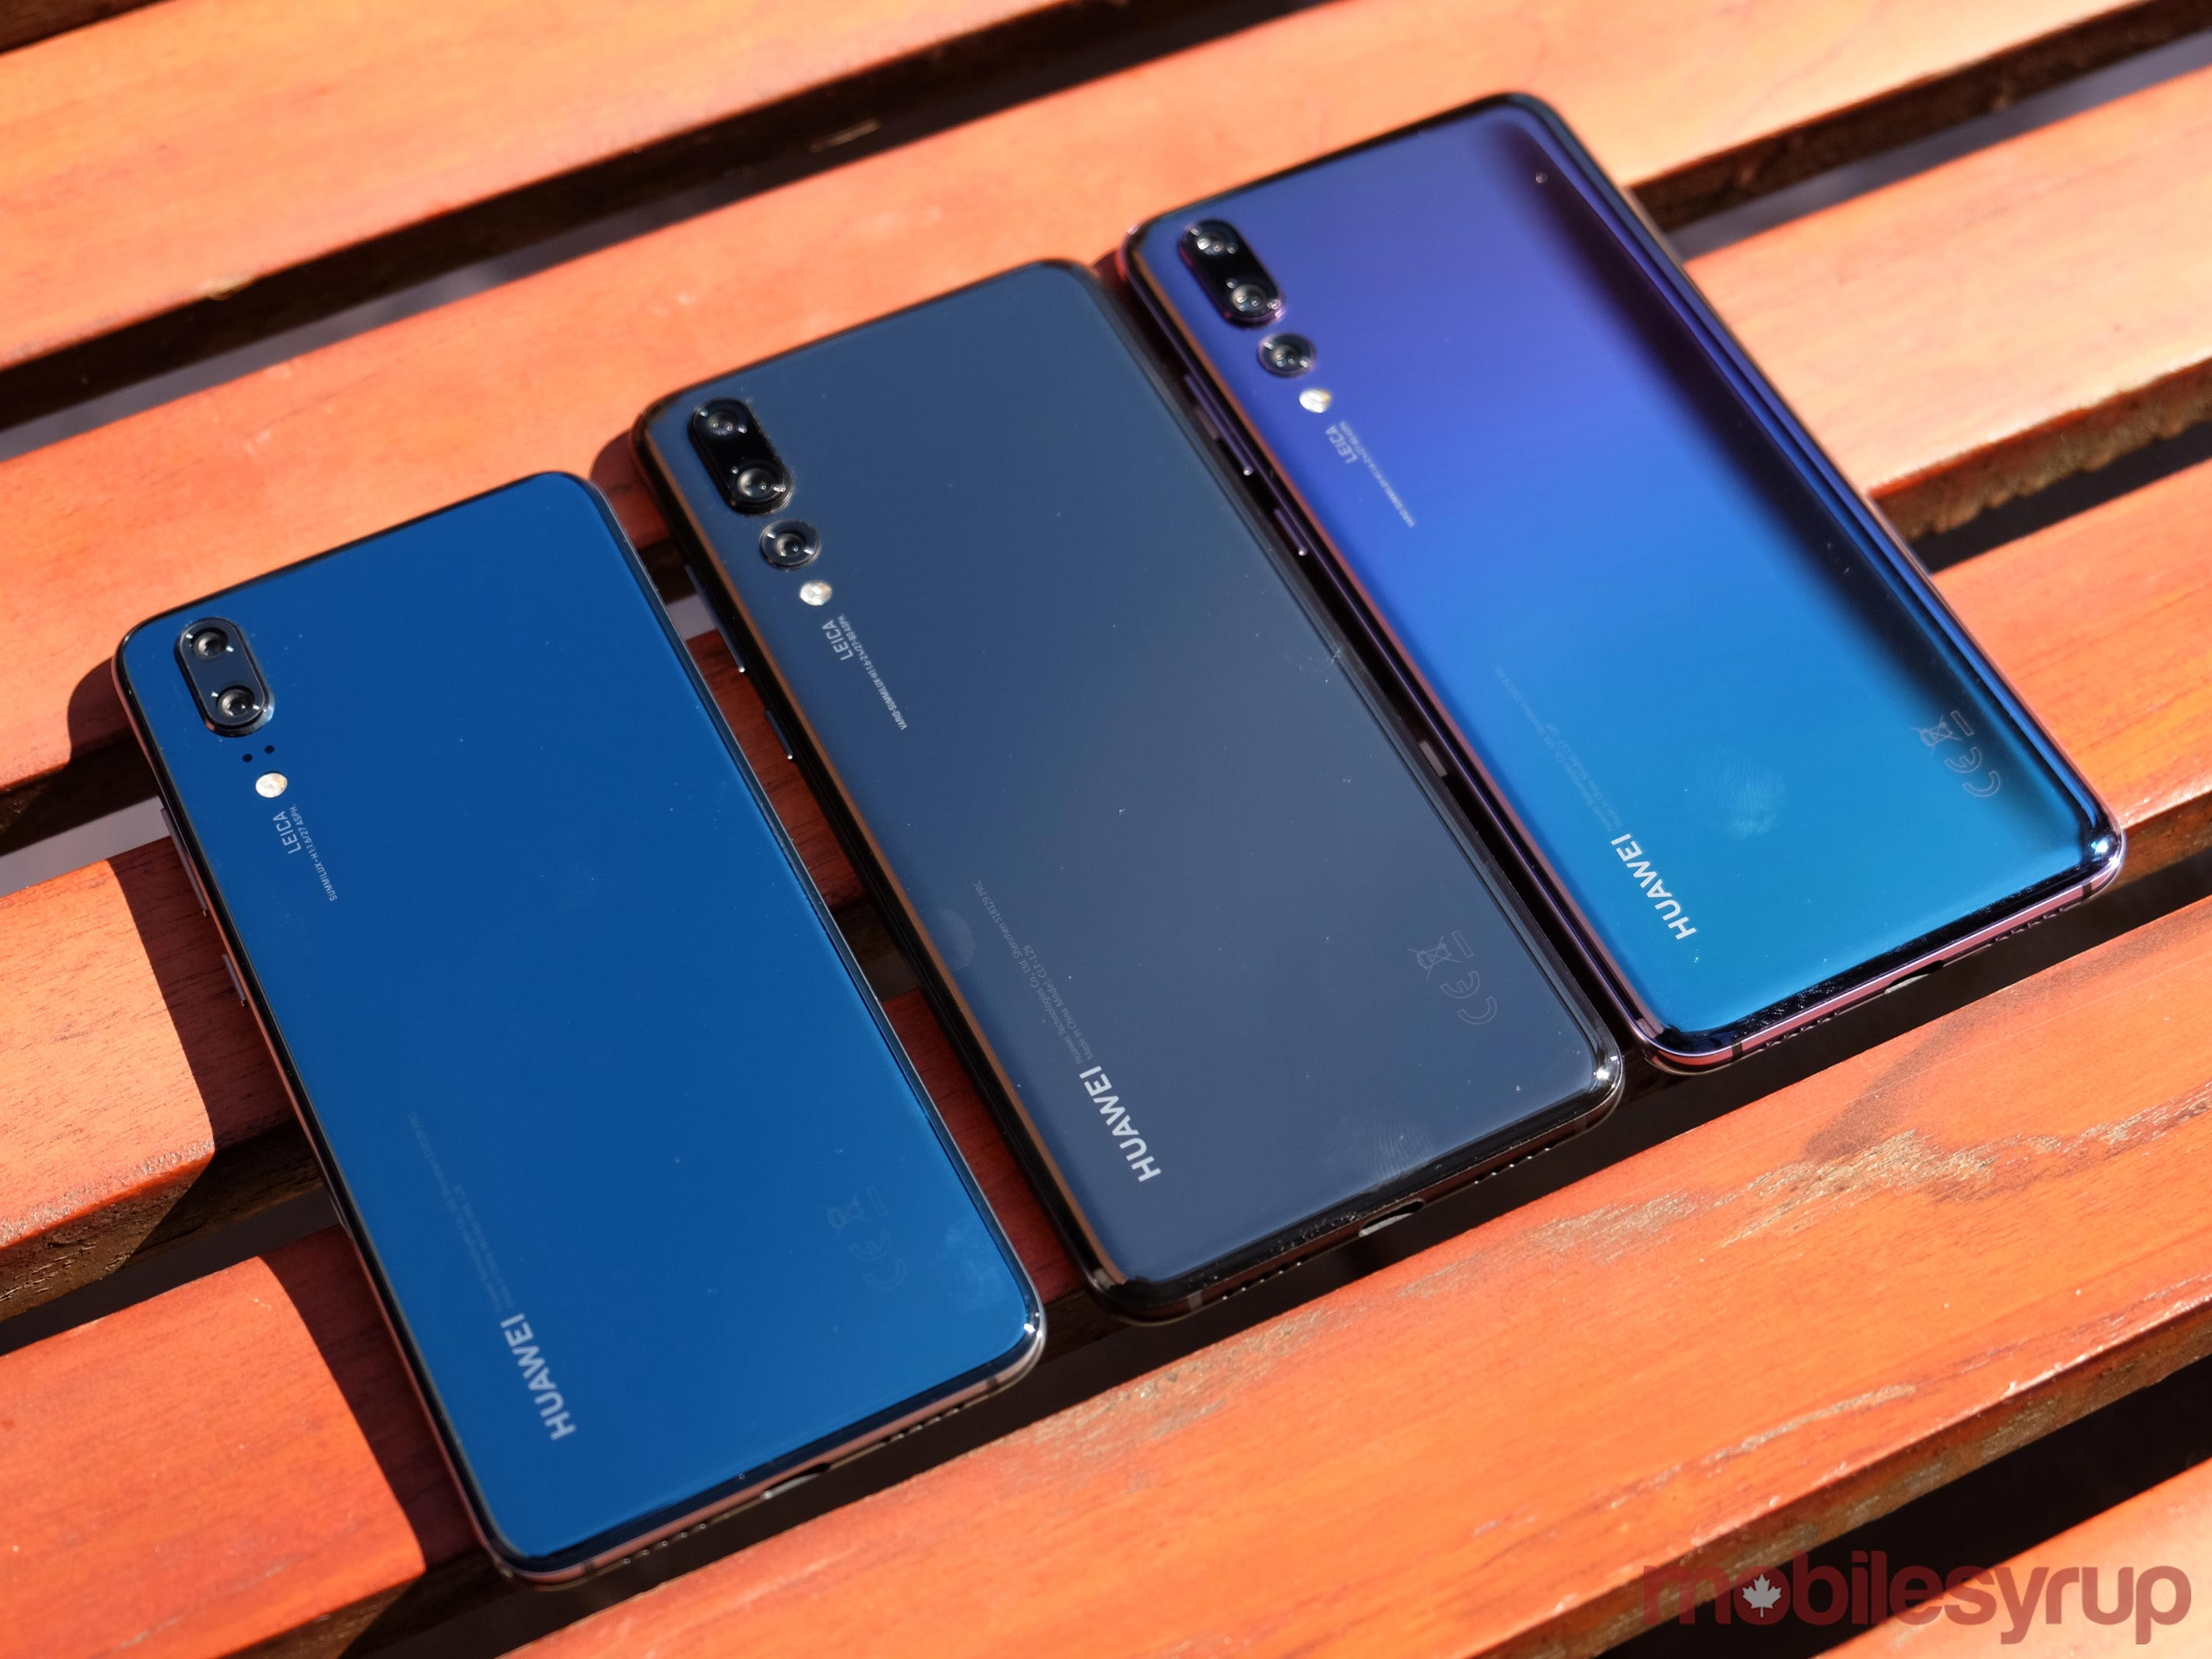 Huawei P20 line-up